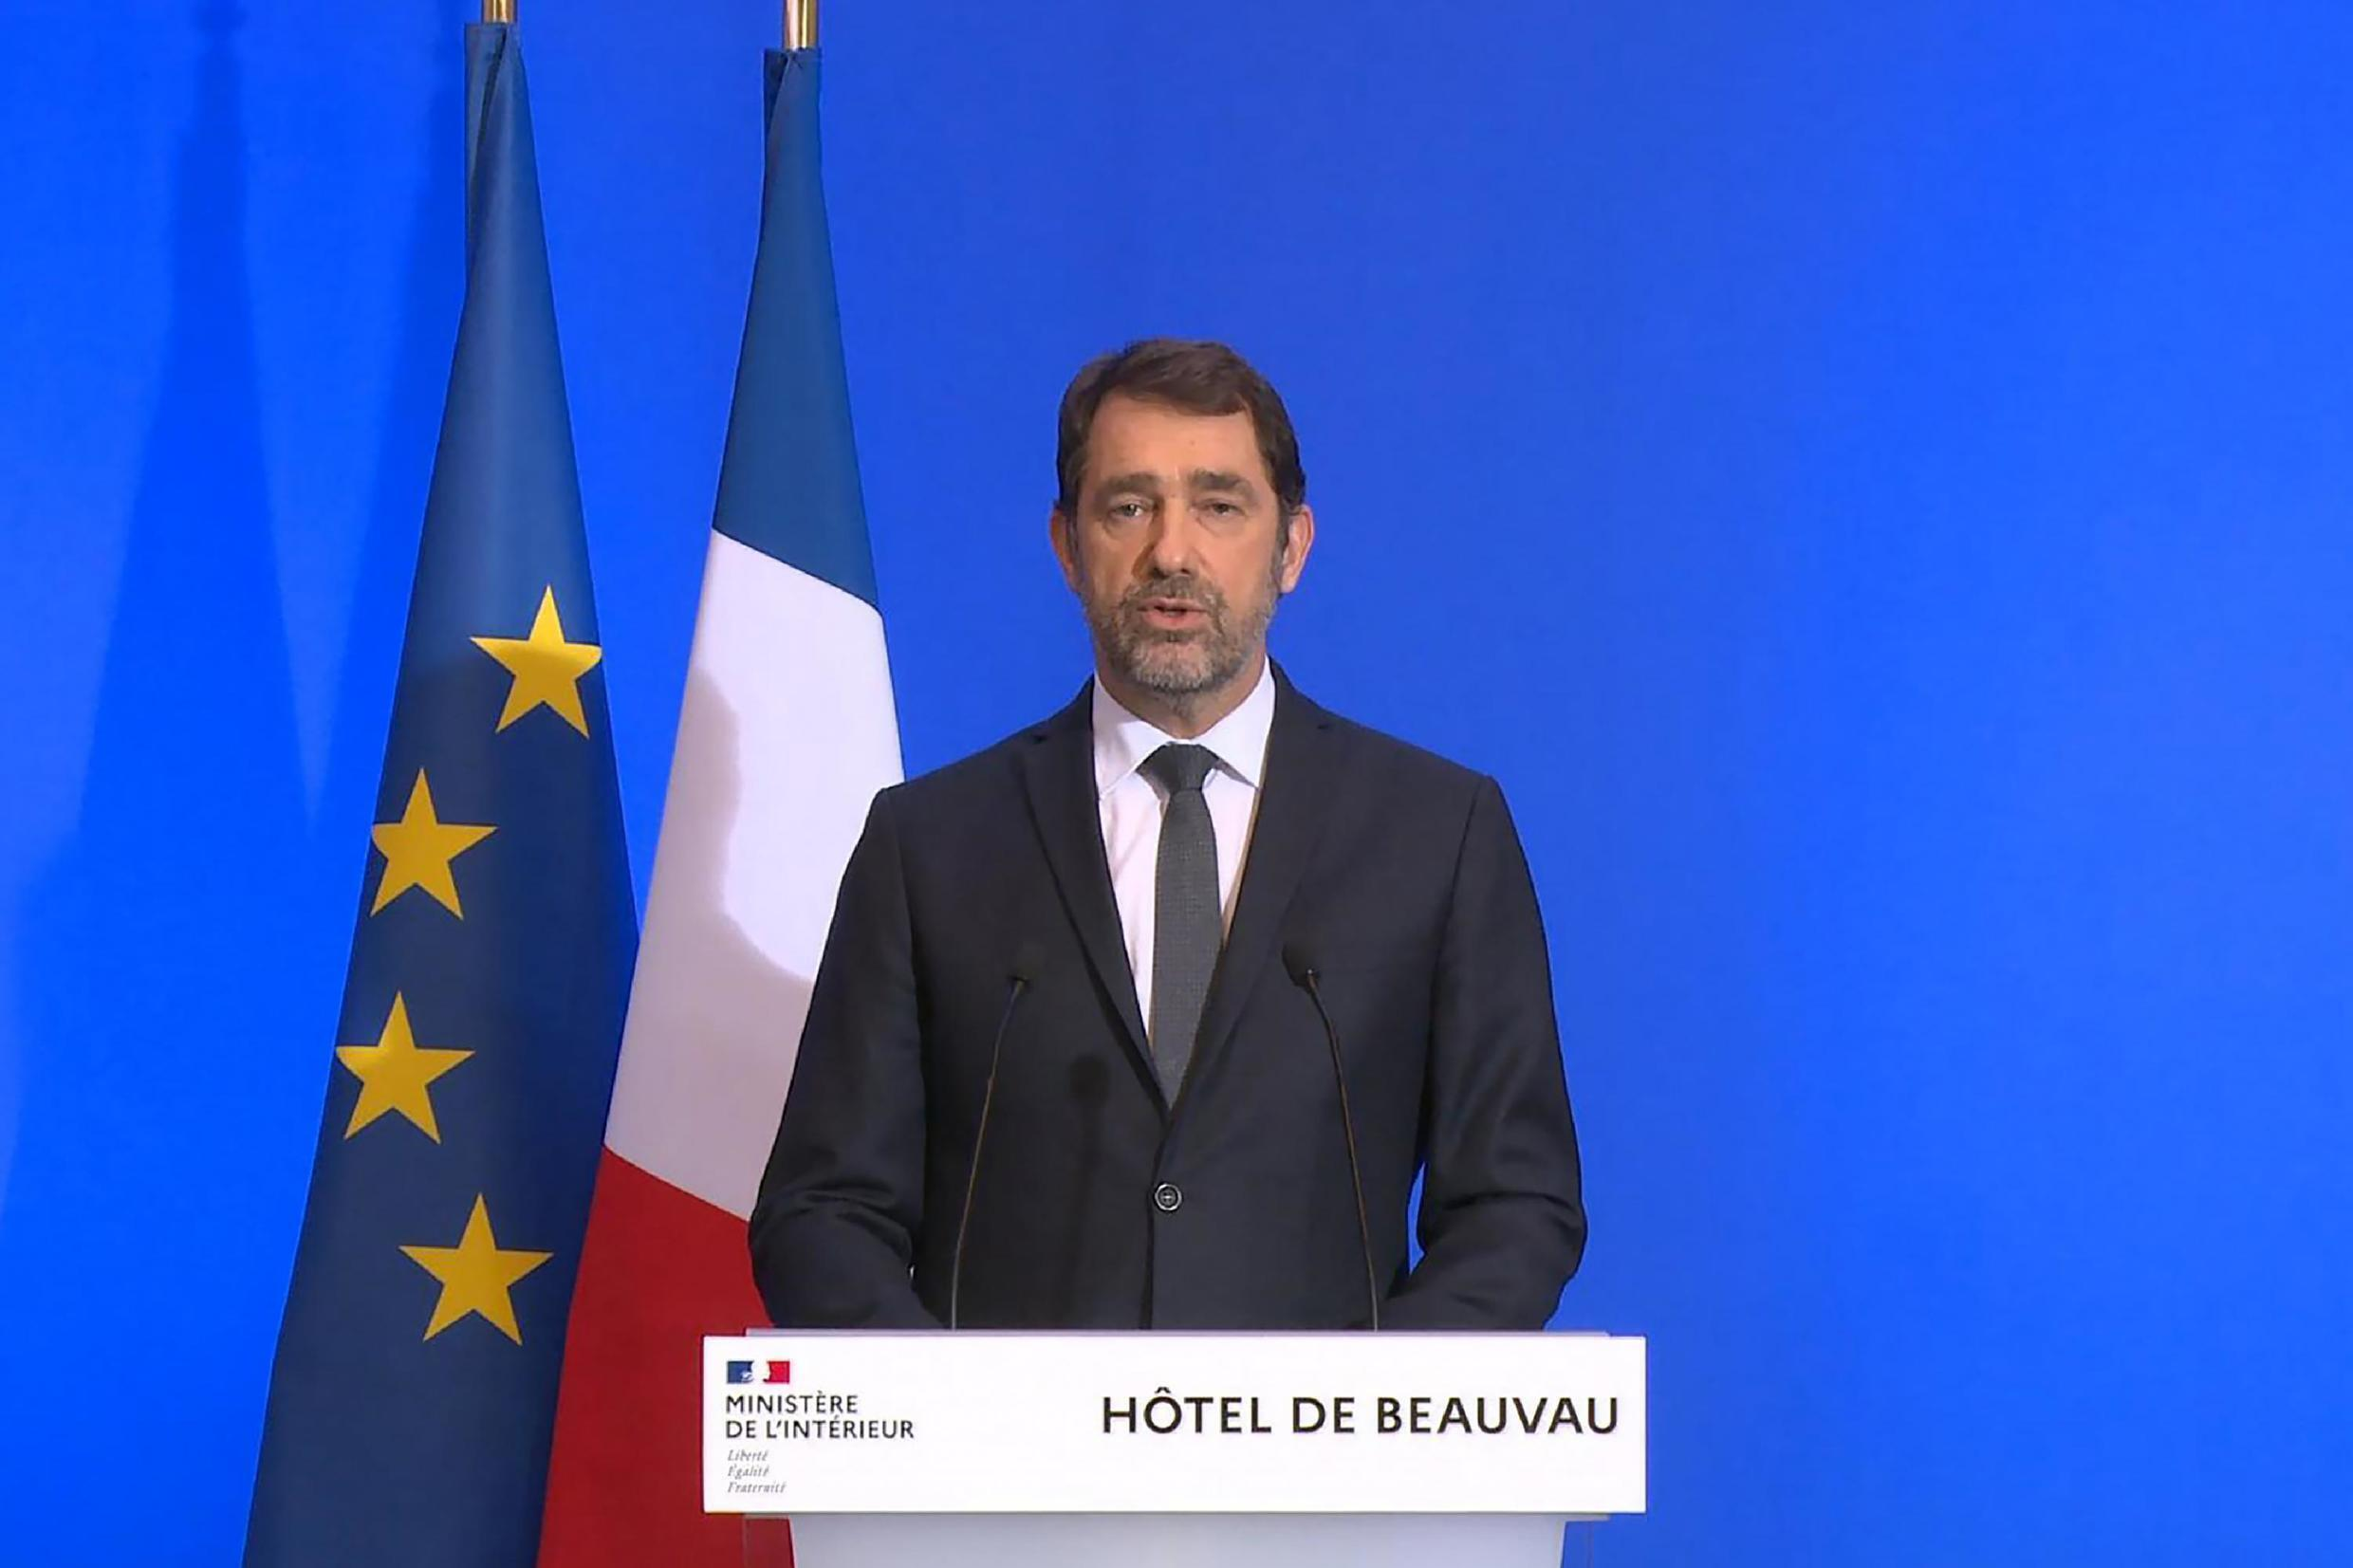 French Interior Minister Christophe Castaner detailing France's confinement measures, including delaying the second round of the local elections, 16 March 2020.